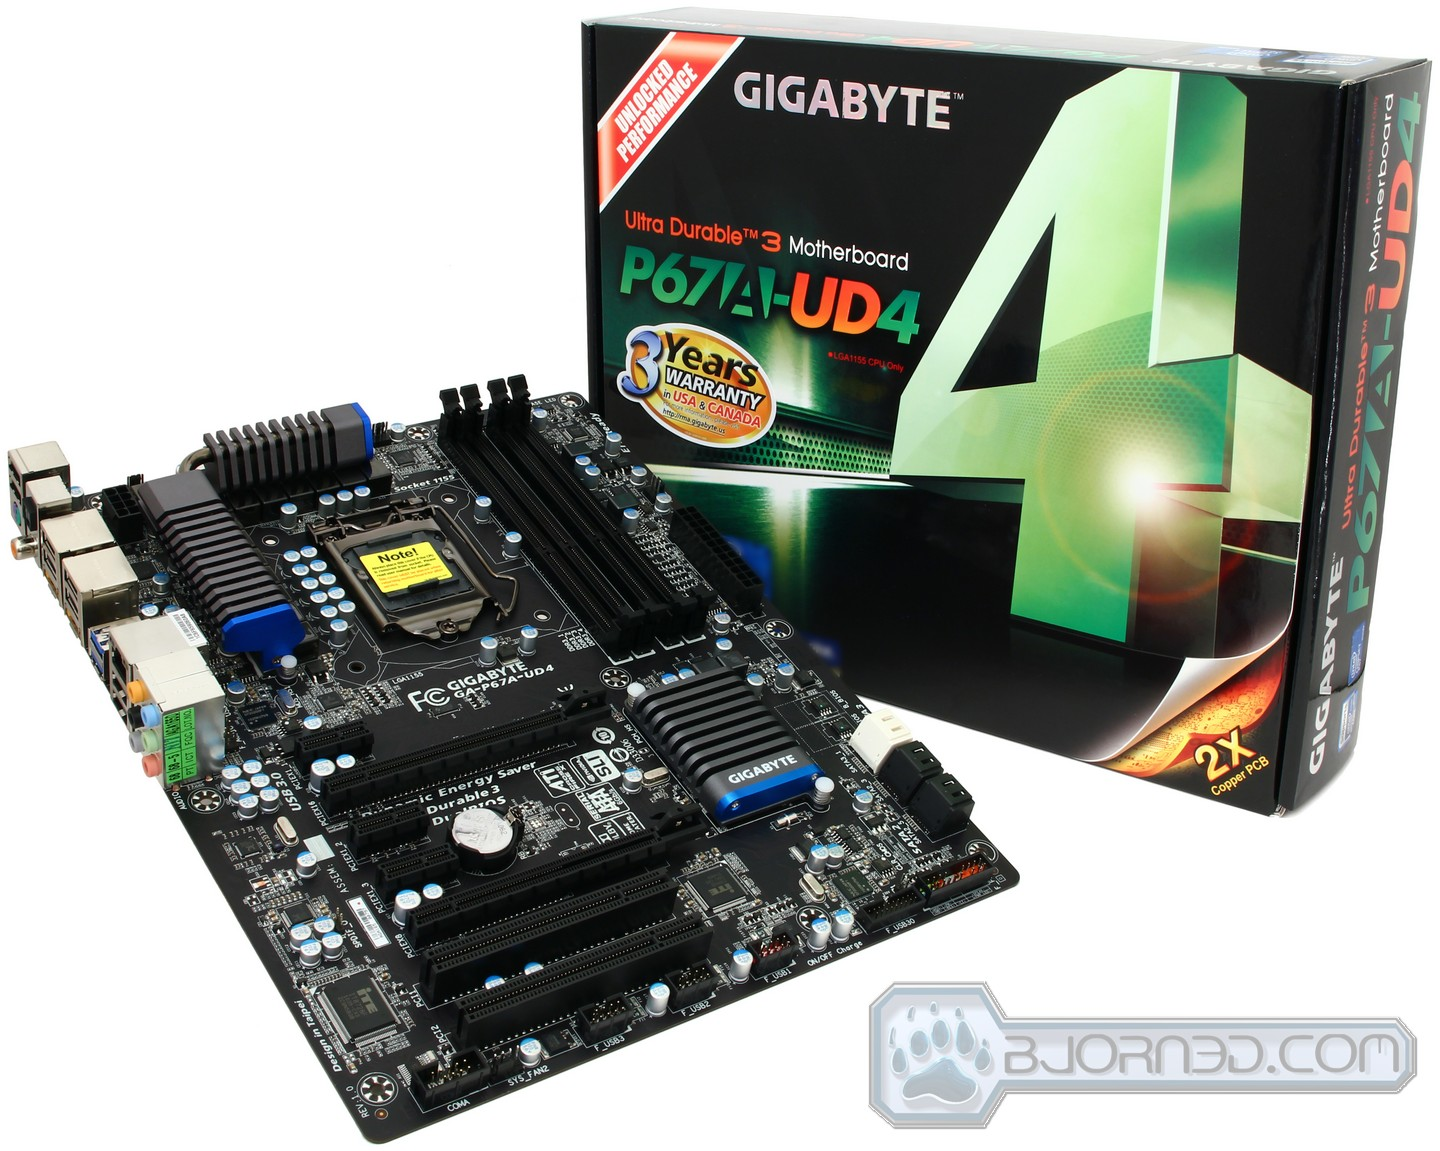 Gigabyte GA-P67A-UD4 Renesas USB 3.0 Driver Windows XP